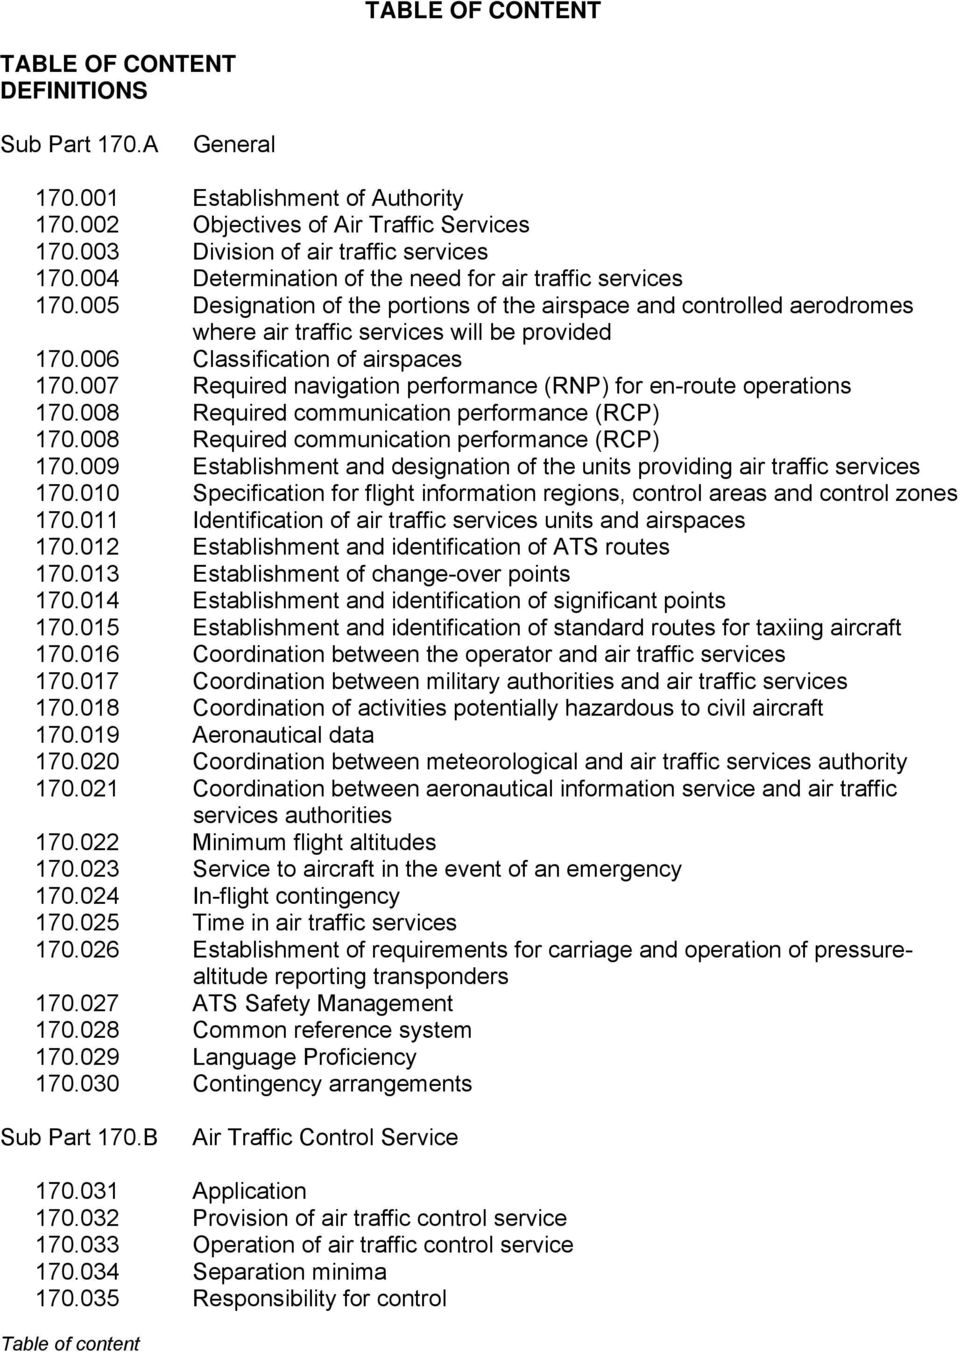 006 Classification of airspaces 170.007 Required navigation performance (RNP) for en-route operations 170.008 Required communication performance (RCP) 170.